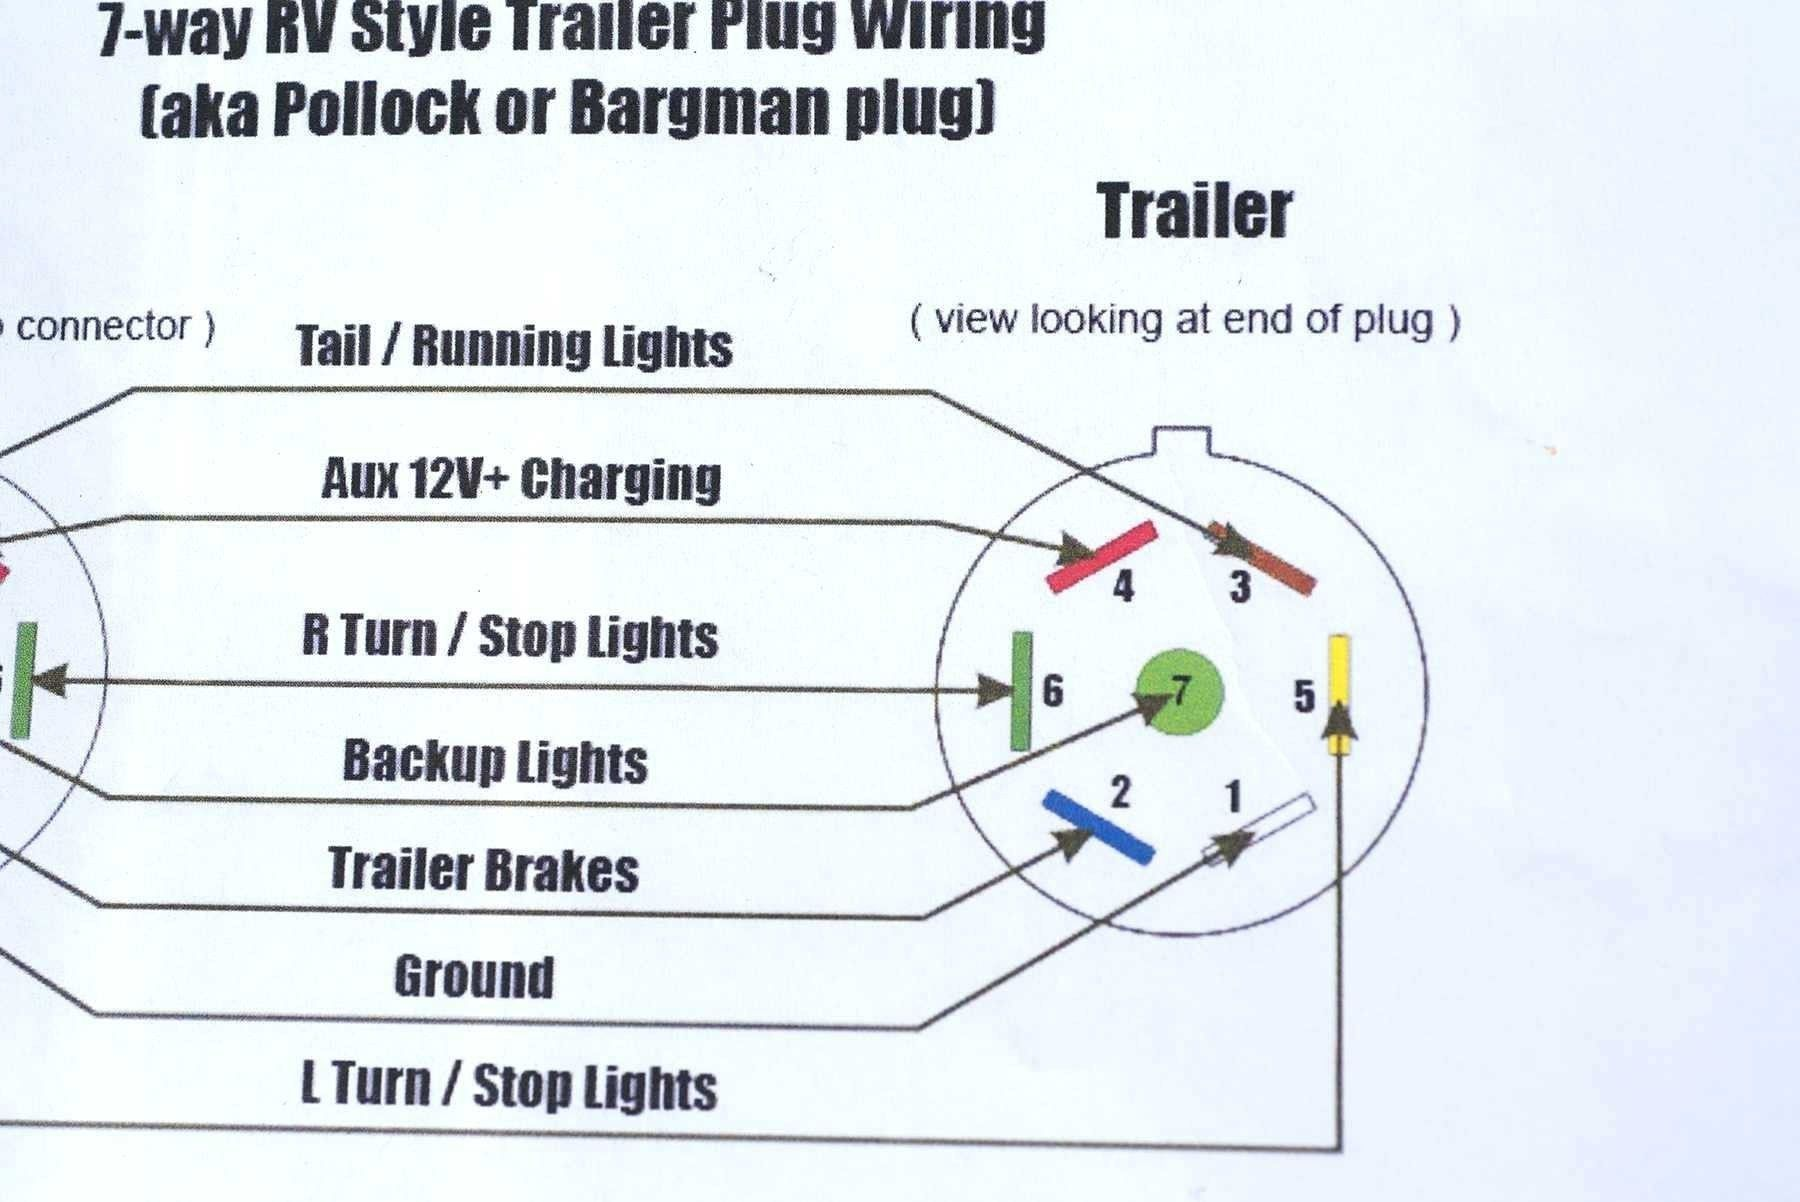 New Wiring Diagram Towbar Electrics Caravan Diagram Diagramtemplate Diagramsample Trailer Wiring Diagram Trailer Light Wiring Boat Trailer Lights